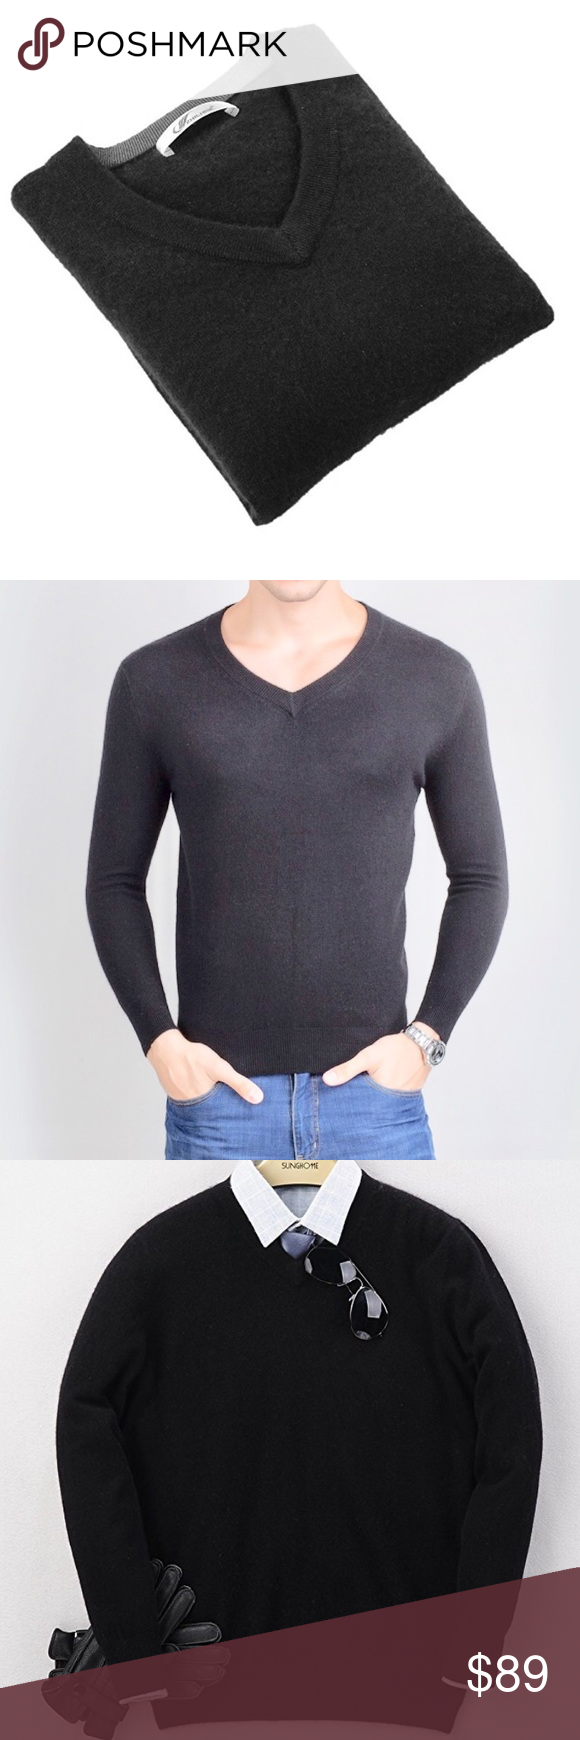 🔥Men's M Perfect Slim Fit V Neck Cashmere Sweater NWT | Cashmere ...